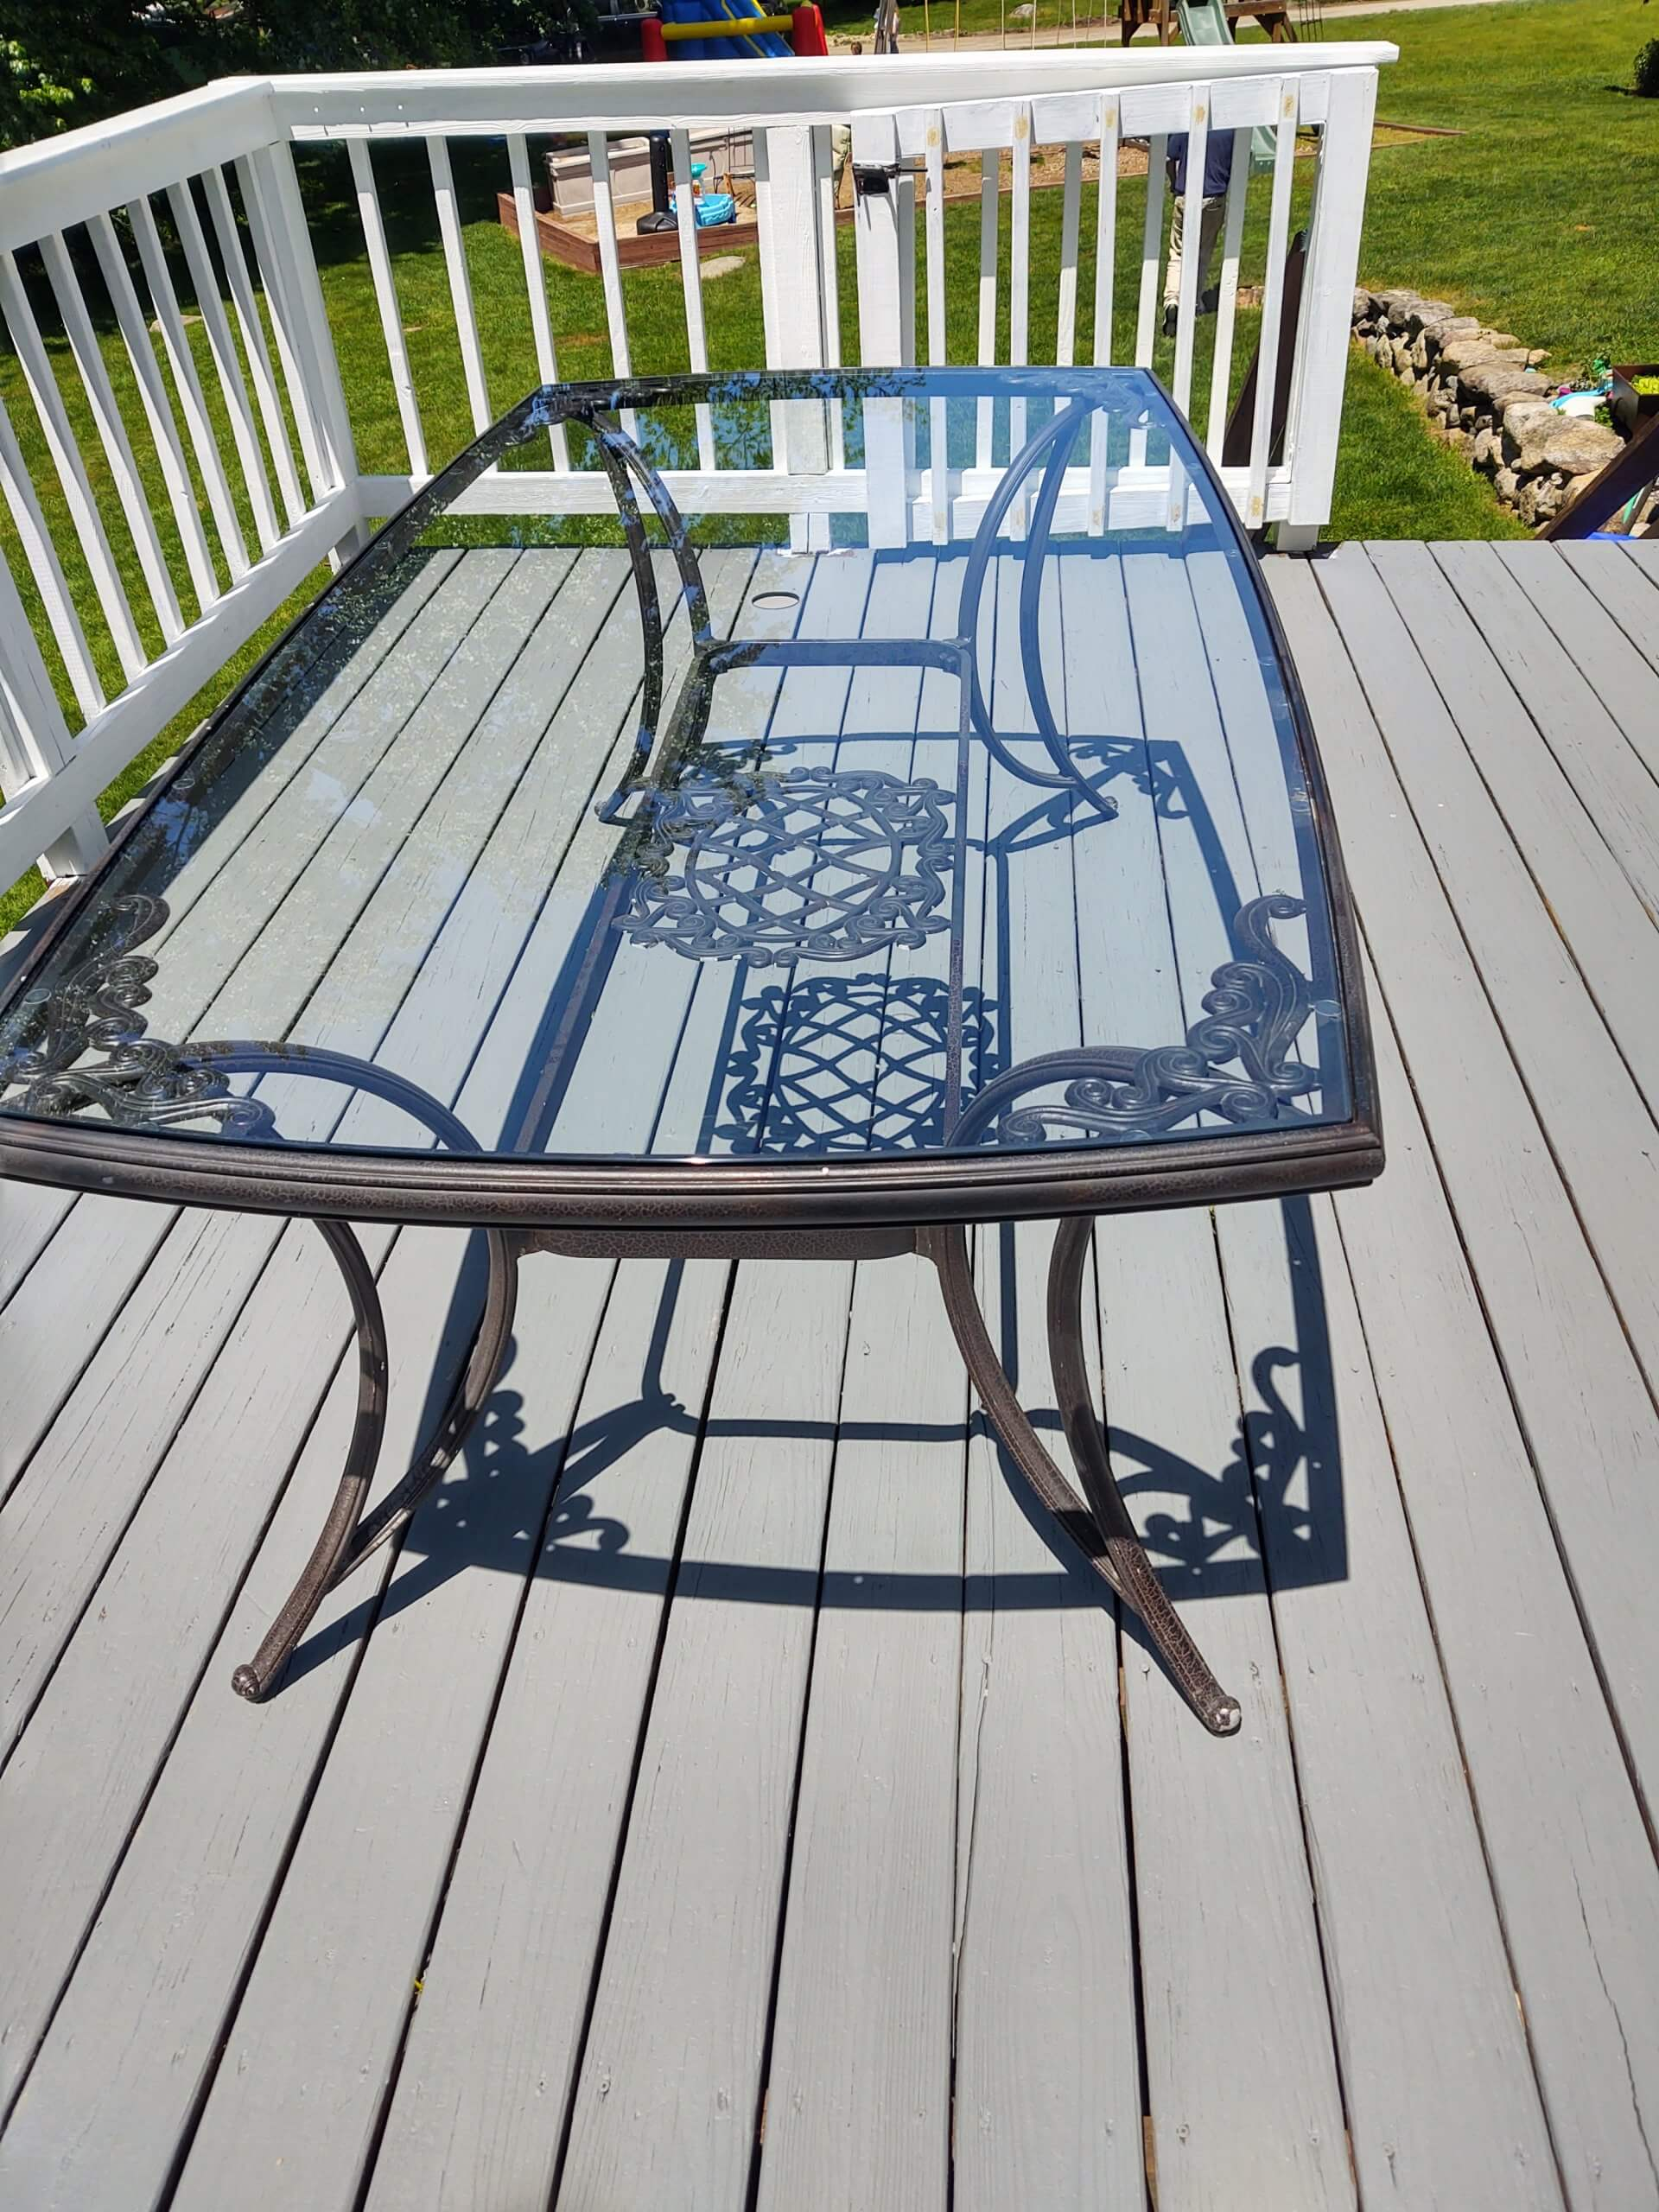 Glass Replacement in an Outdoor Table Frame